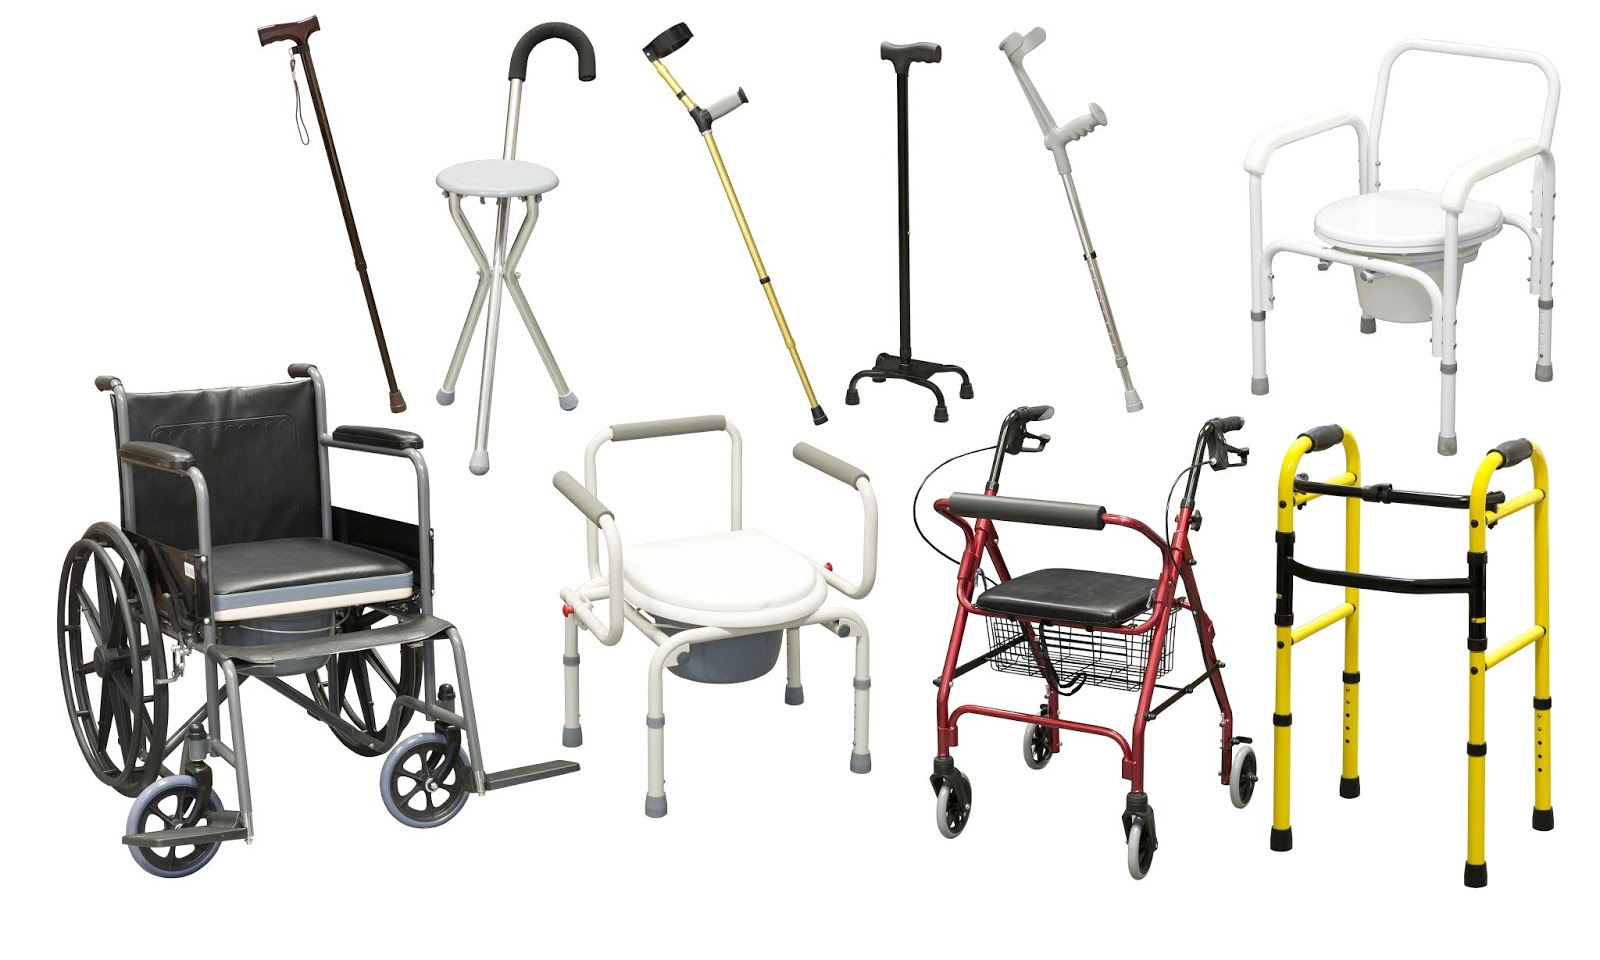 Looking at Different Mobility Aids for When You Get Older